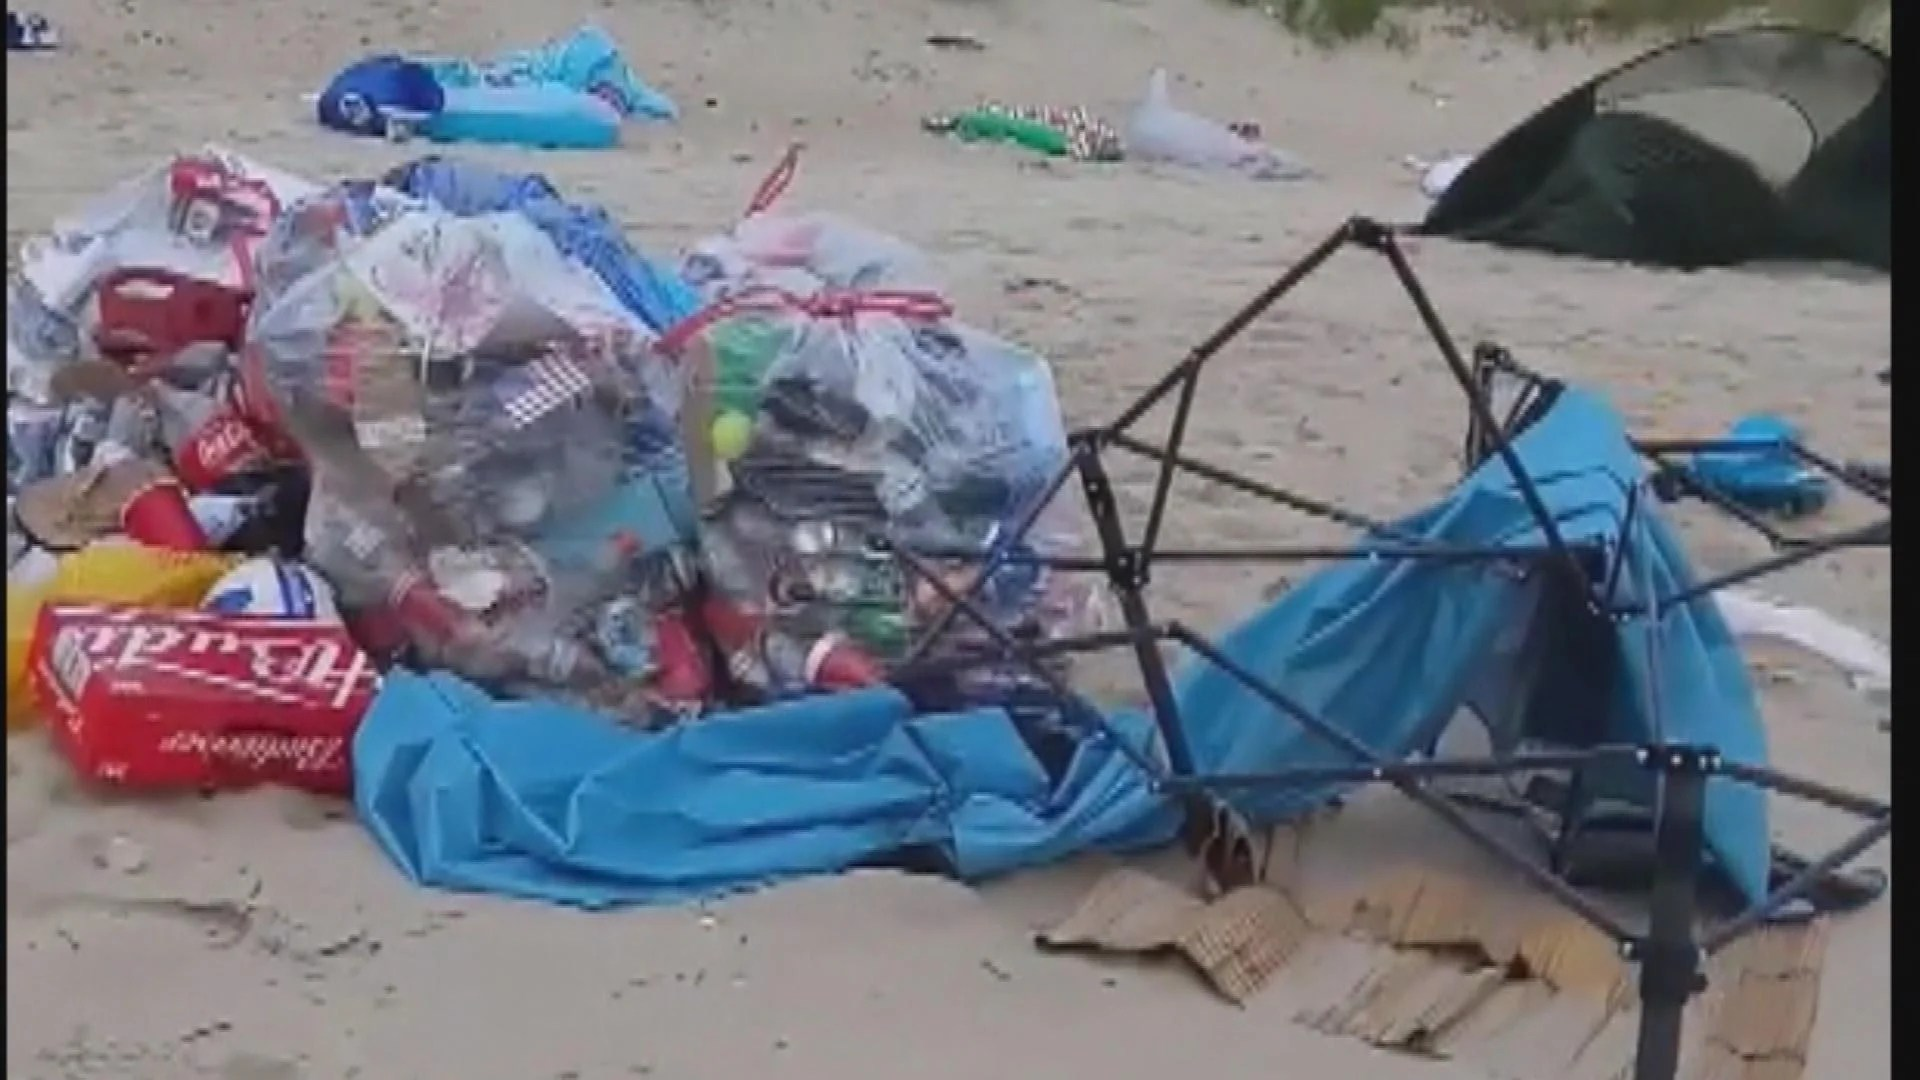 10 Tons Of Trash Left On Virginia Beach Following